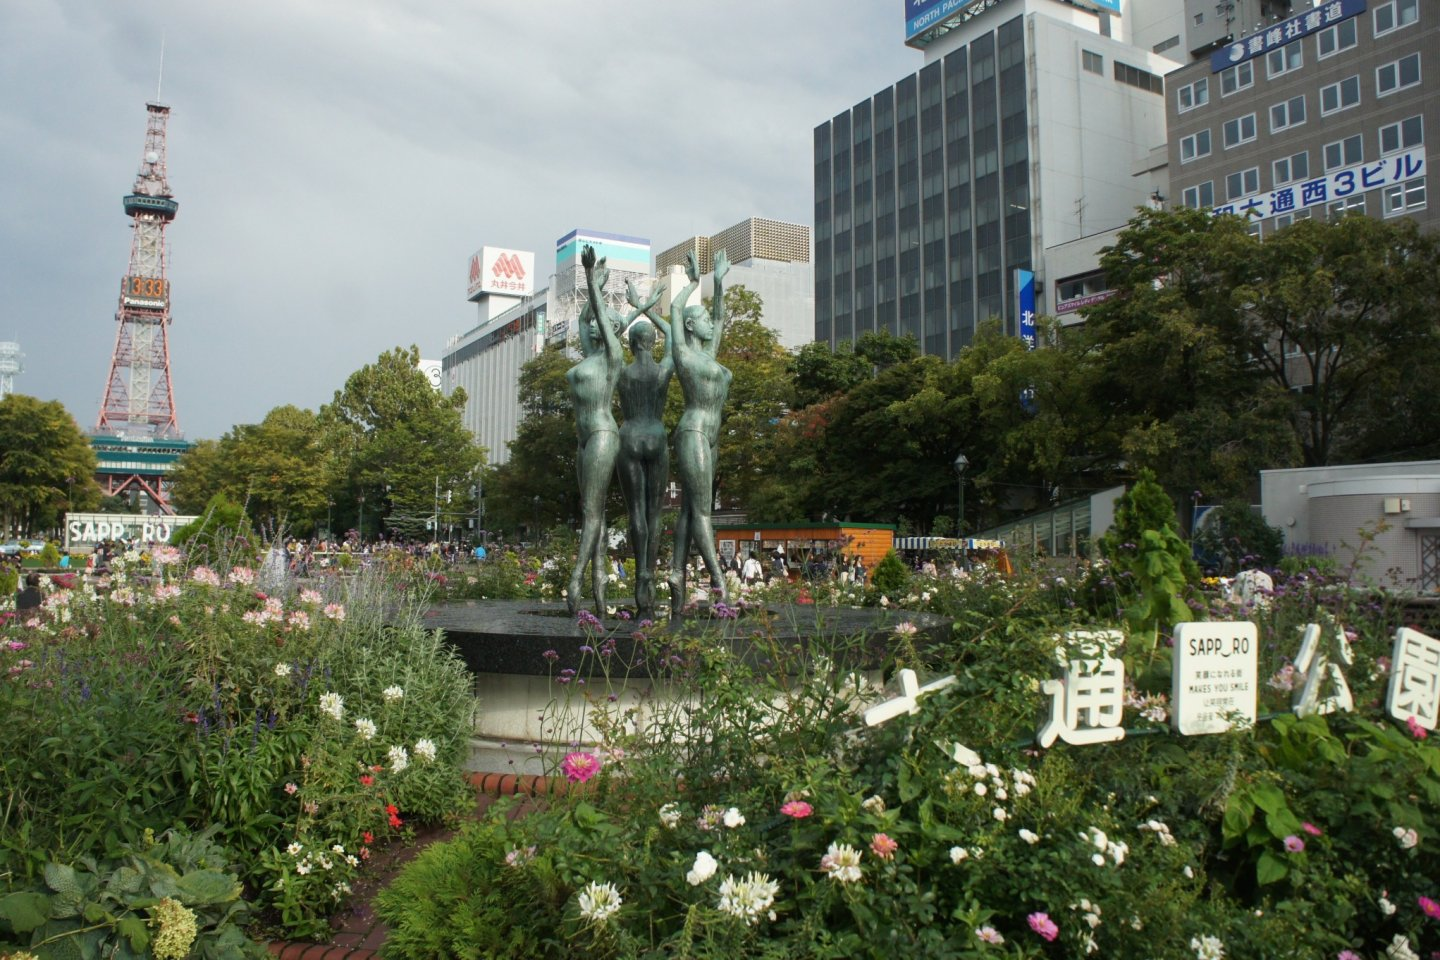 Odori Park is full of flowers, beauty and artistry.